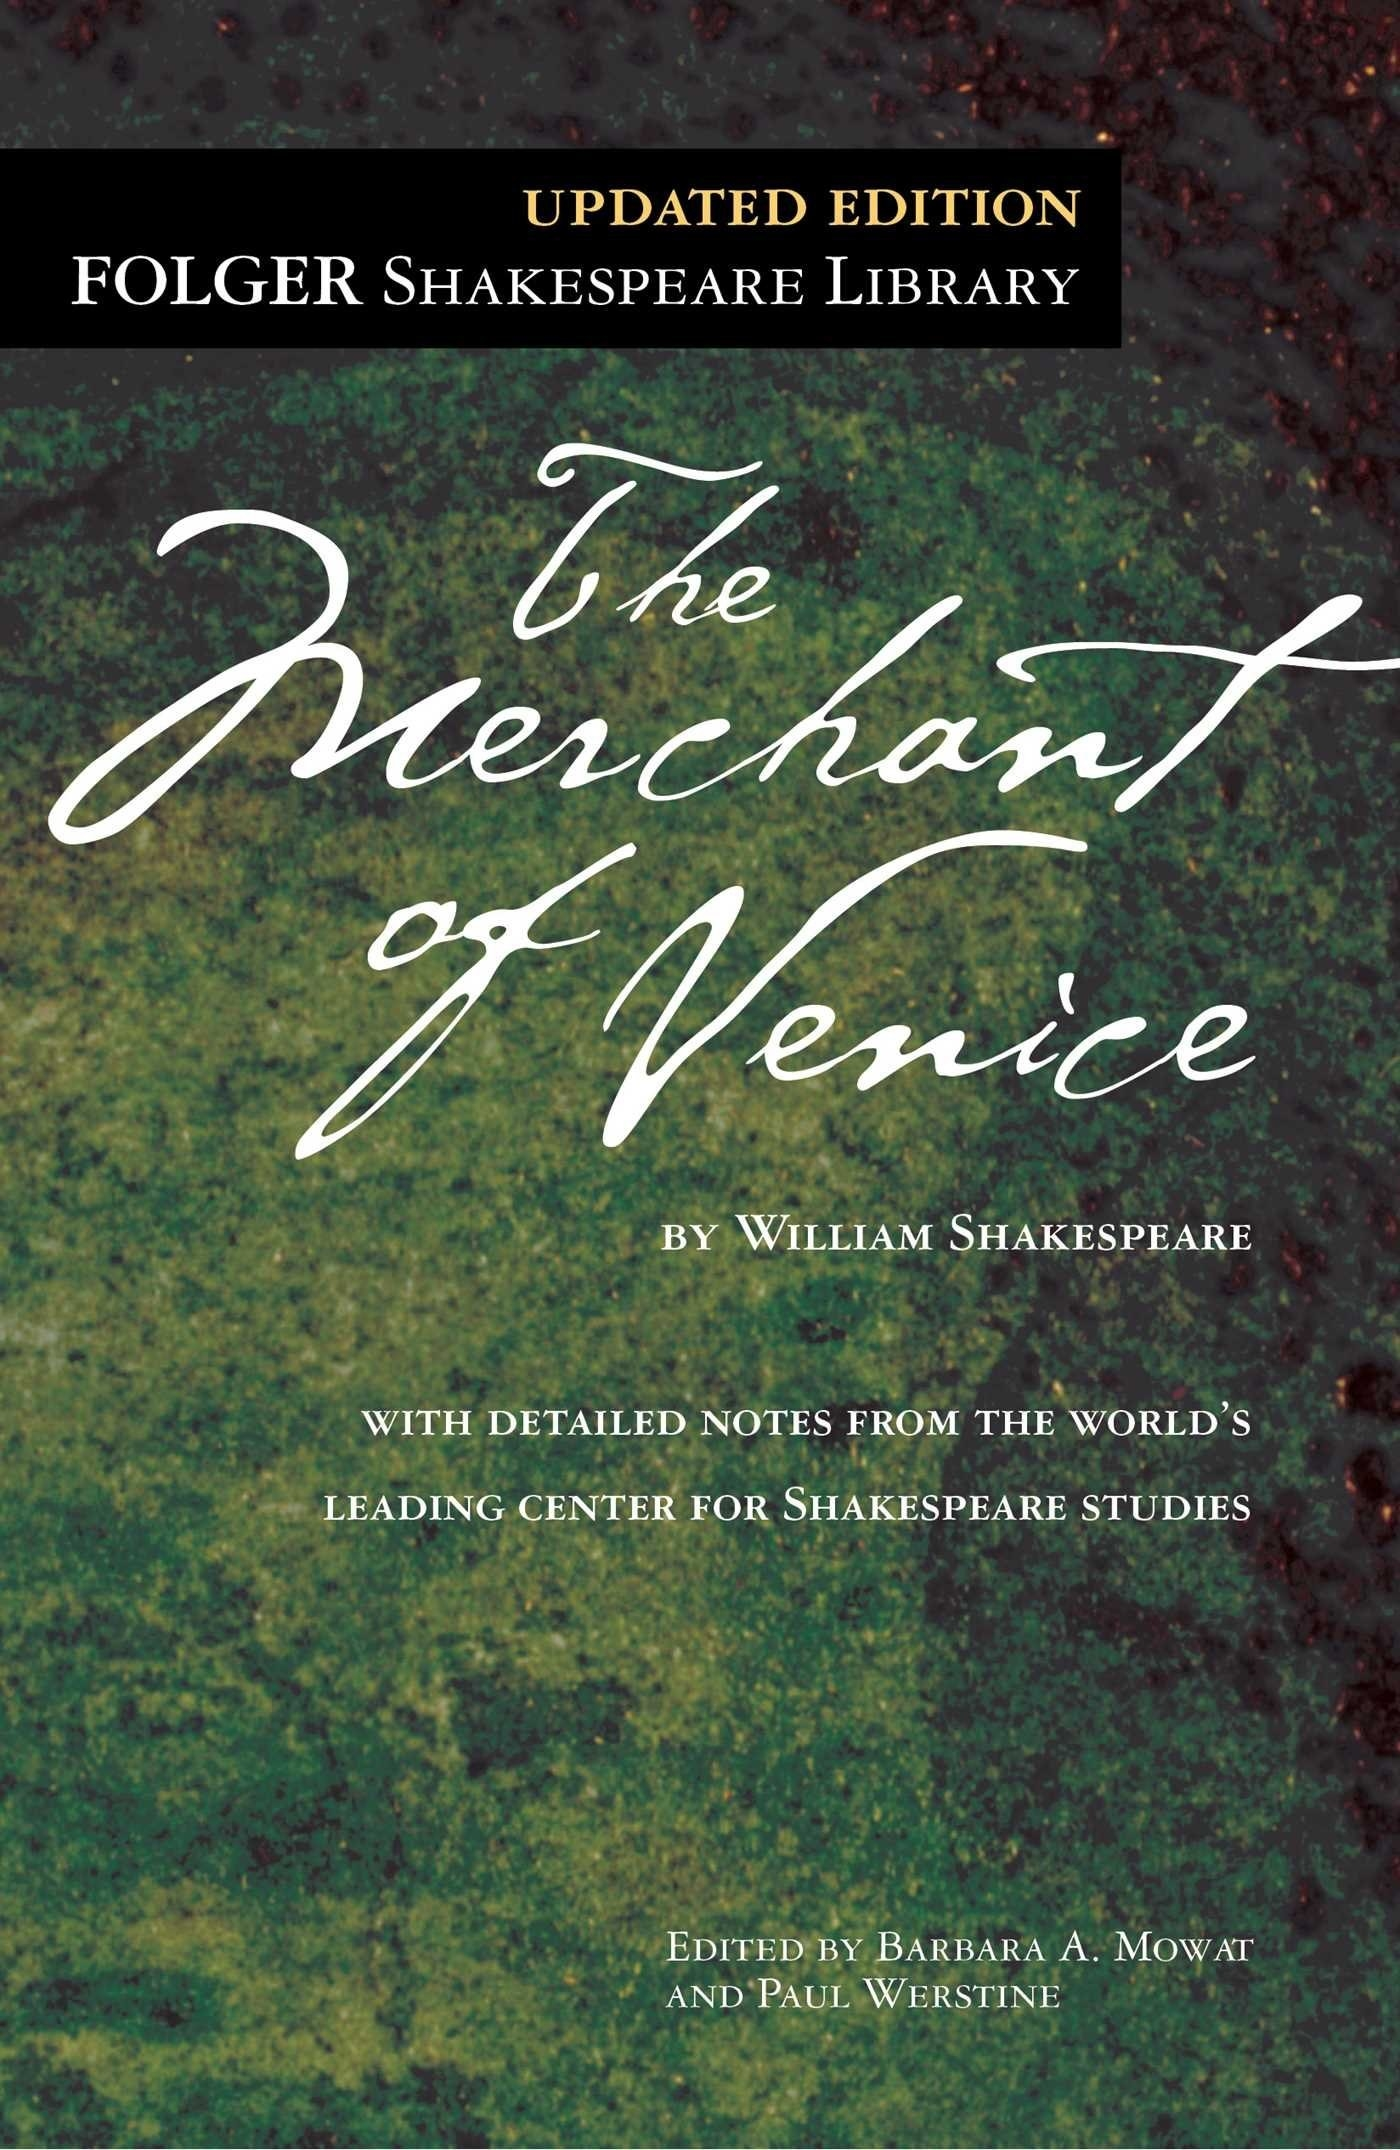 The book cover for The Merchant of Venice